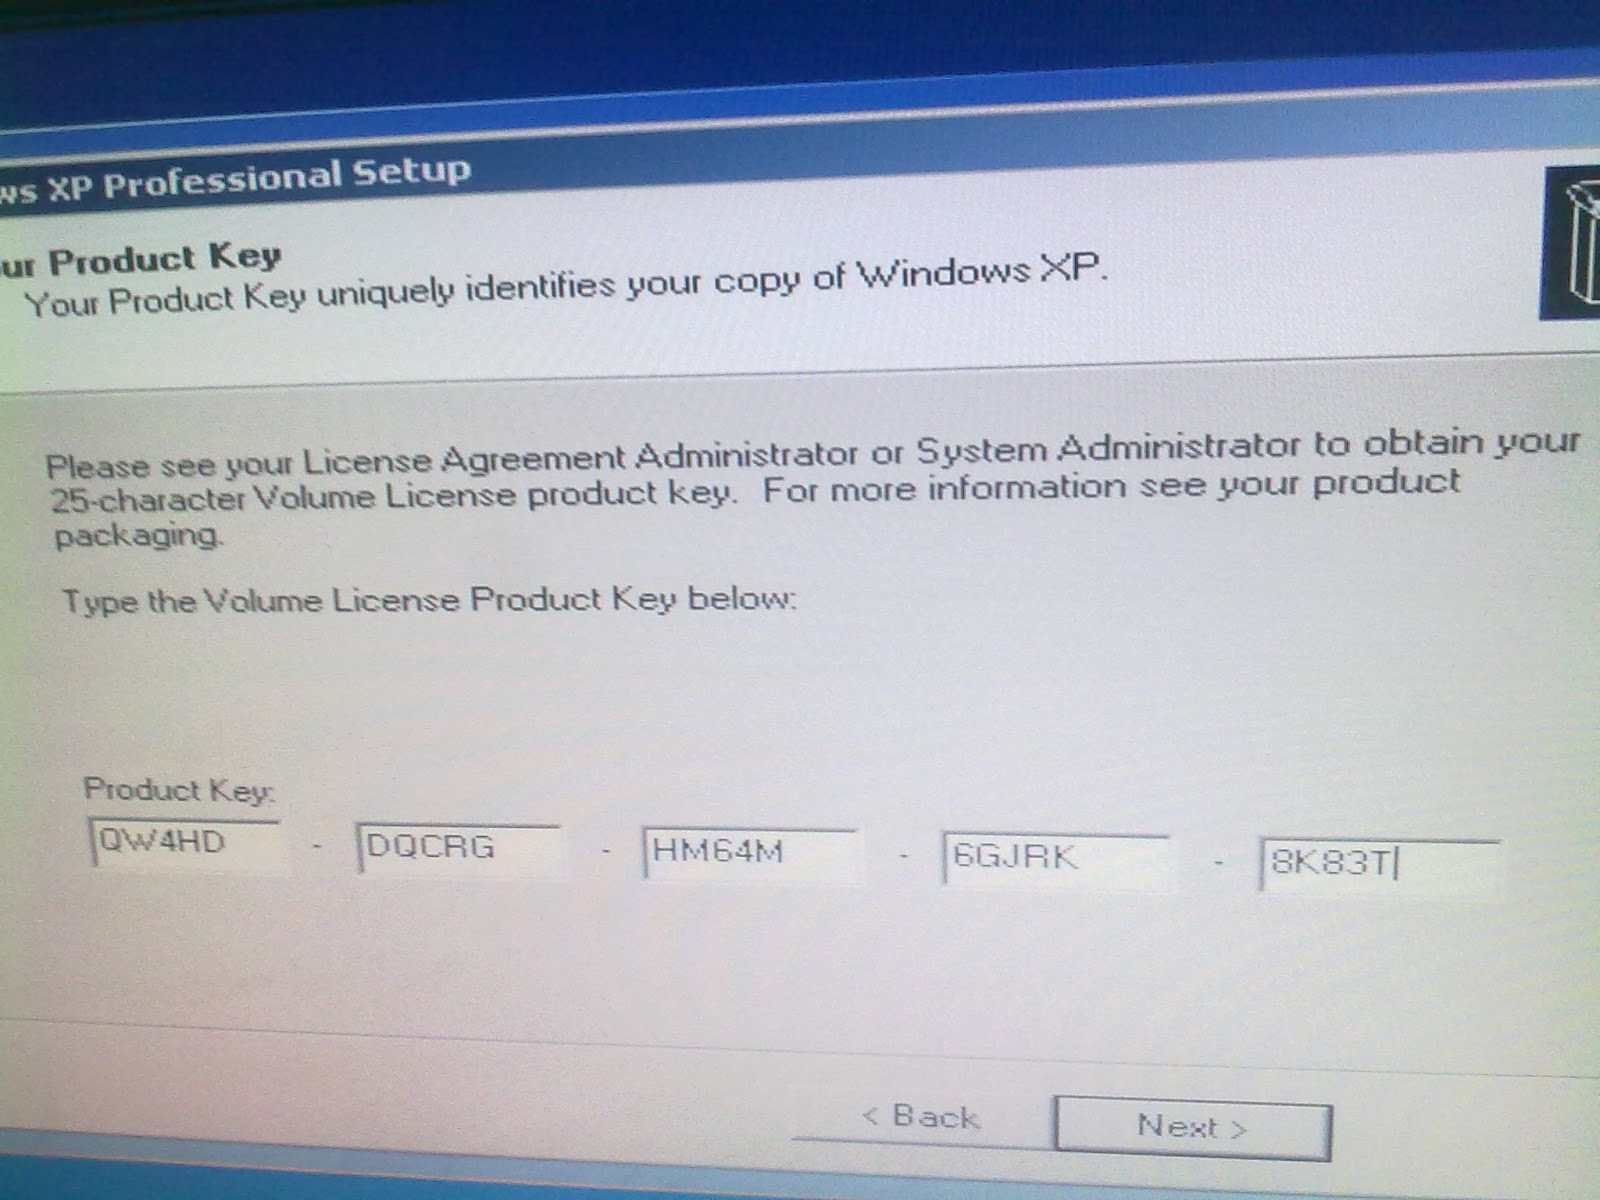 Download xp windows serial key free beanfilecloud for Window xp product key